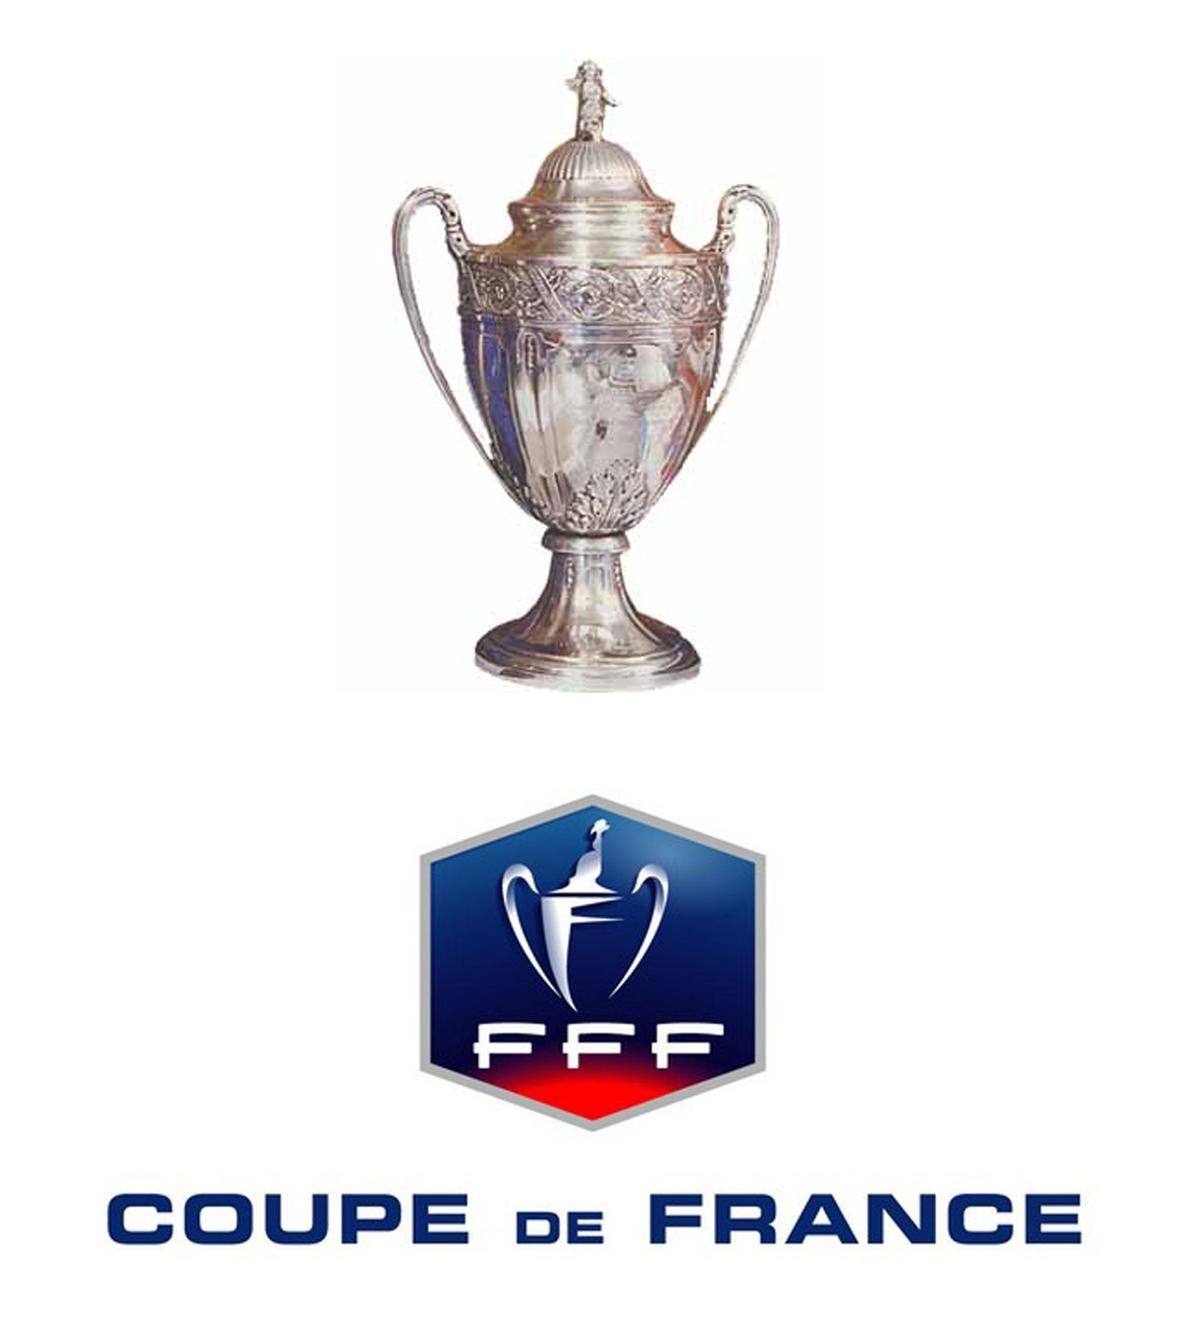 Actualit tirage coupe de france club football union sportive aubigny vend e footeo - Coupe de france 2014 foot ...